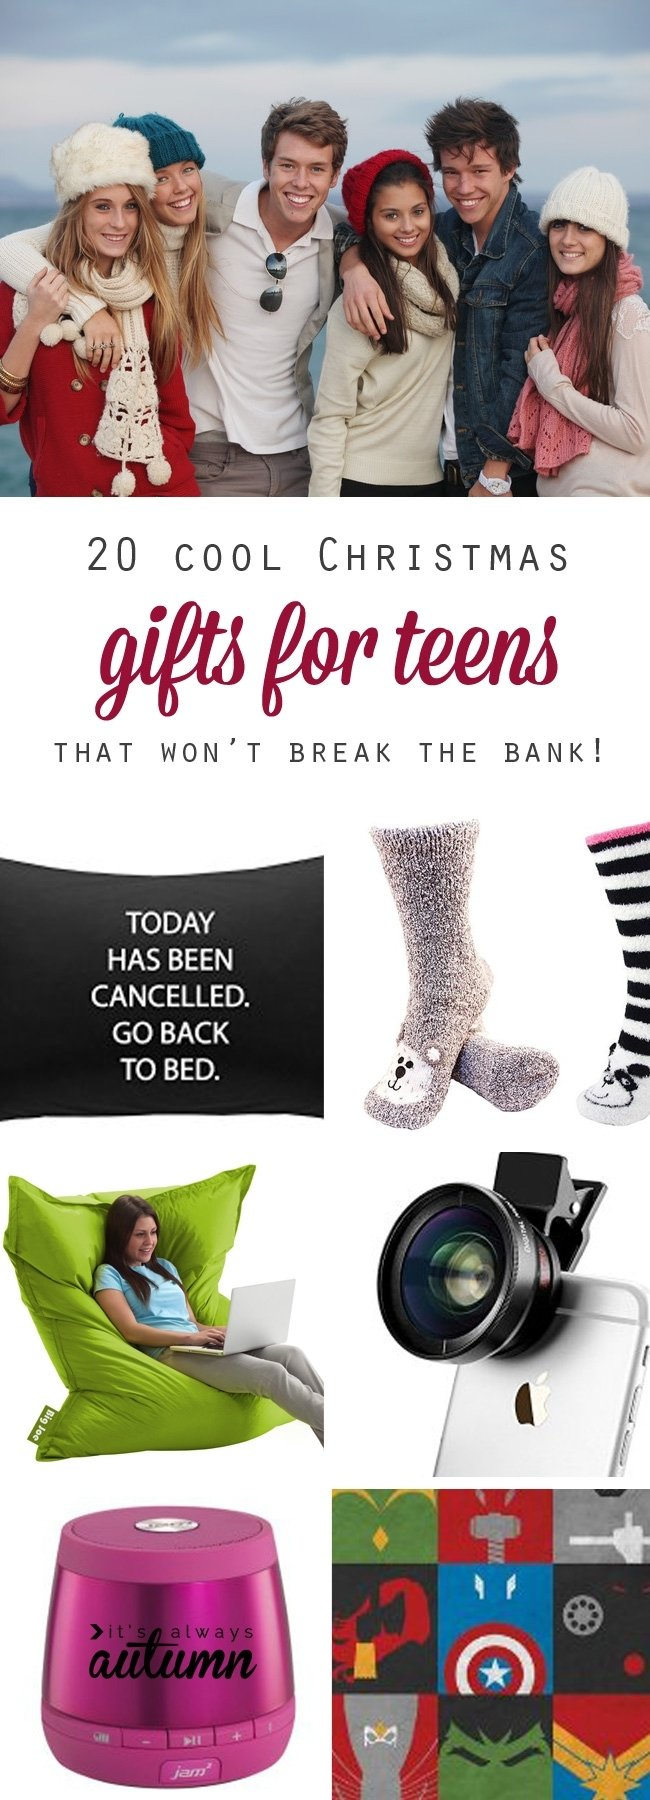 10 Fabulous Christmas Gift Ideas For Teenage Girls best christmas gift ideas for teens its always autumn 7